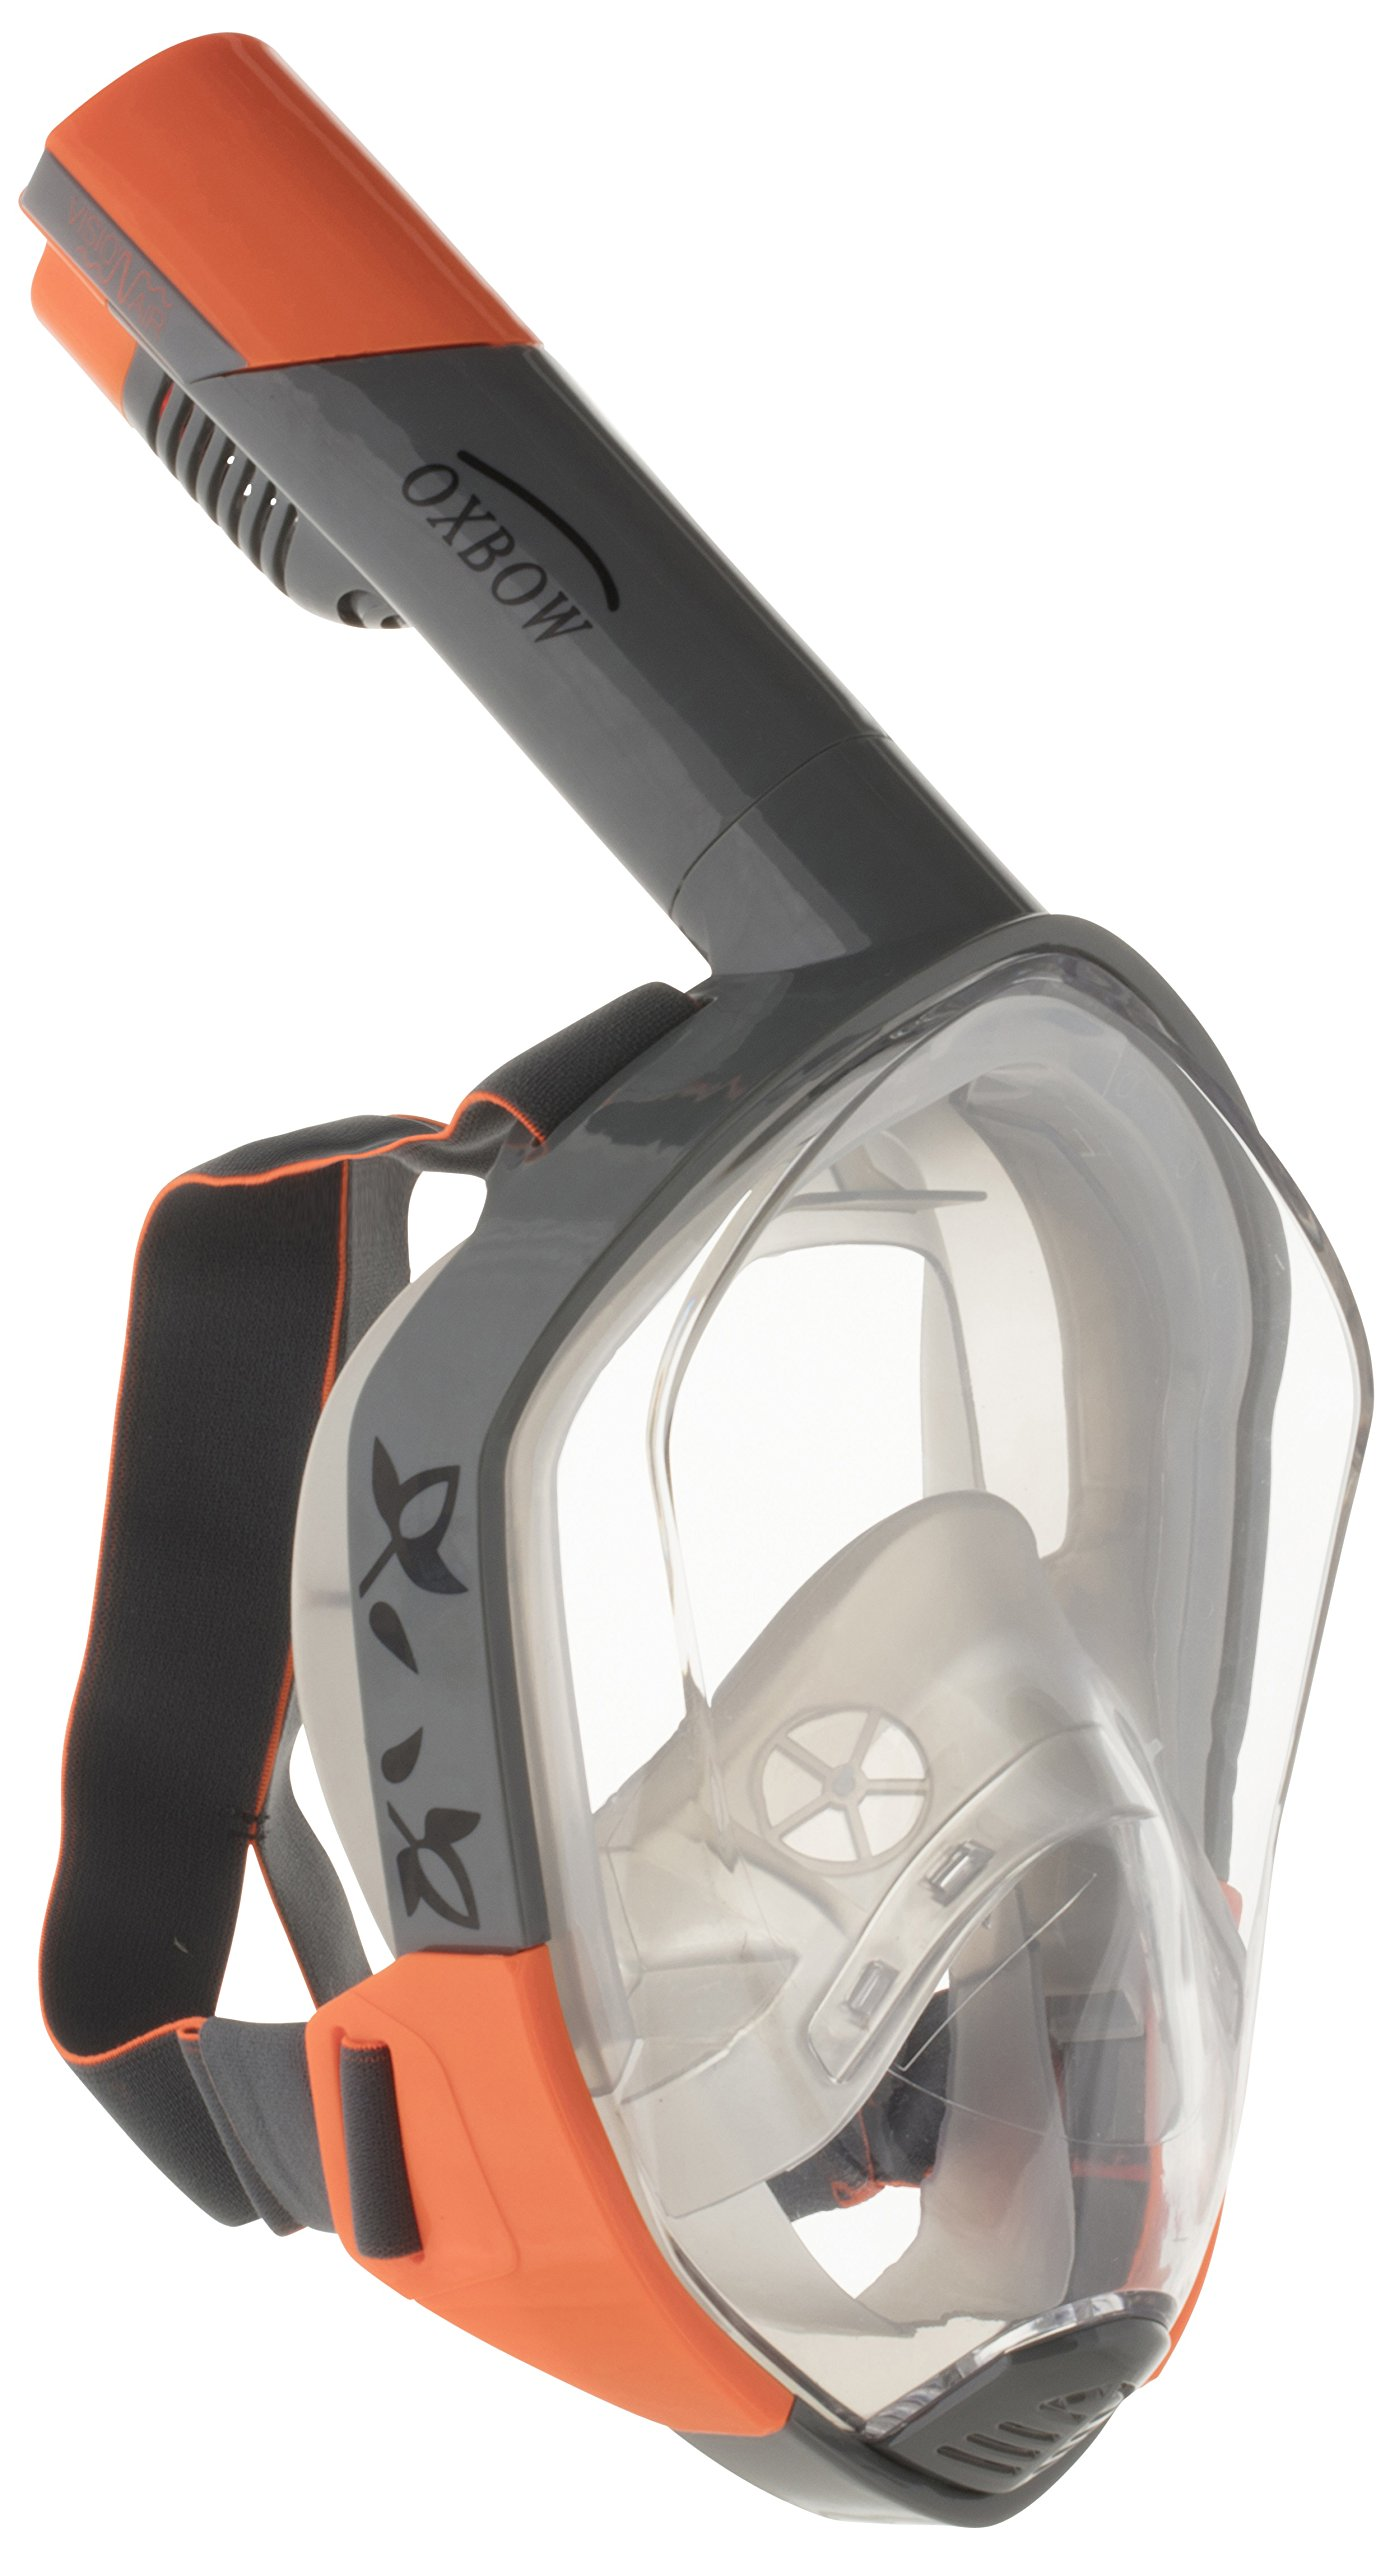 OxbOw Visio 'n 'Air ® Panoramic Mask 3 Generation Snorkel Mask, Unisex, VISIO-n-AIR Panoramamaske 3 Generation